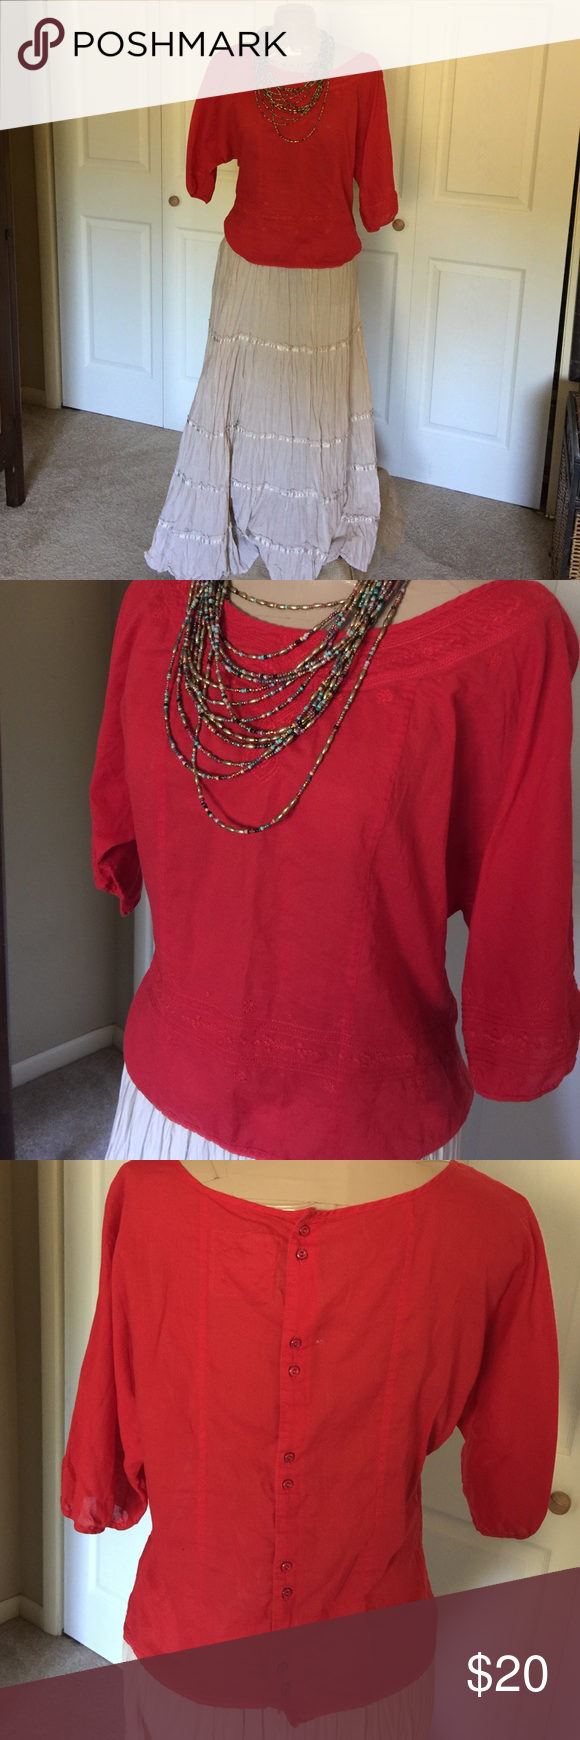 🎈FREE PEOPLE RED TOP🎈 Red Free People top, buttons in back, embroidery design around neck, front of blouse, bottom front and sleeves. This would be cute for the Christmas season, no flaws, tears or stains. Free People Tops